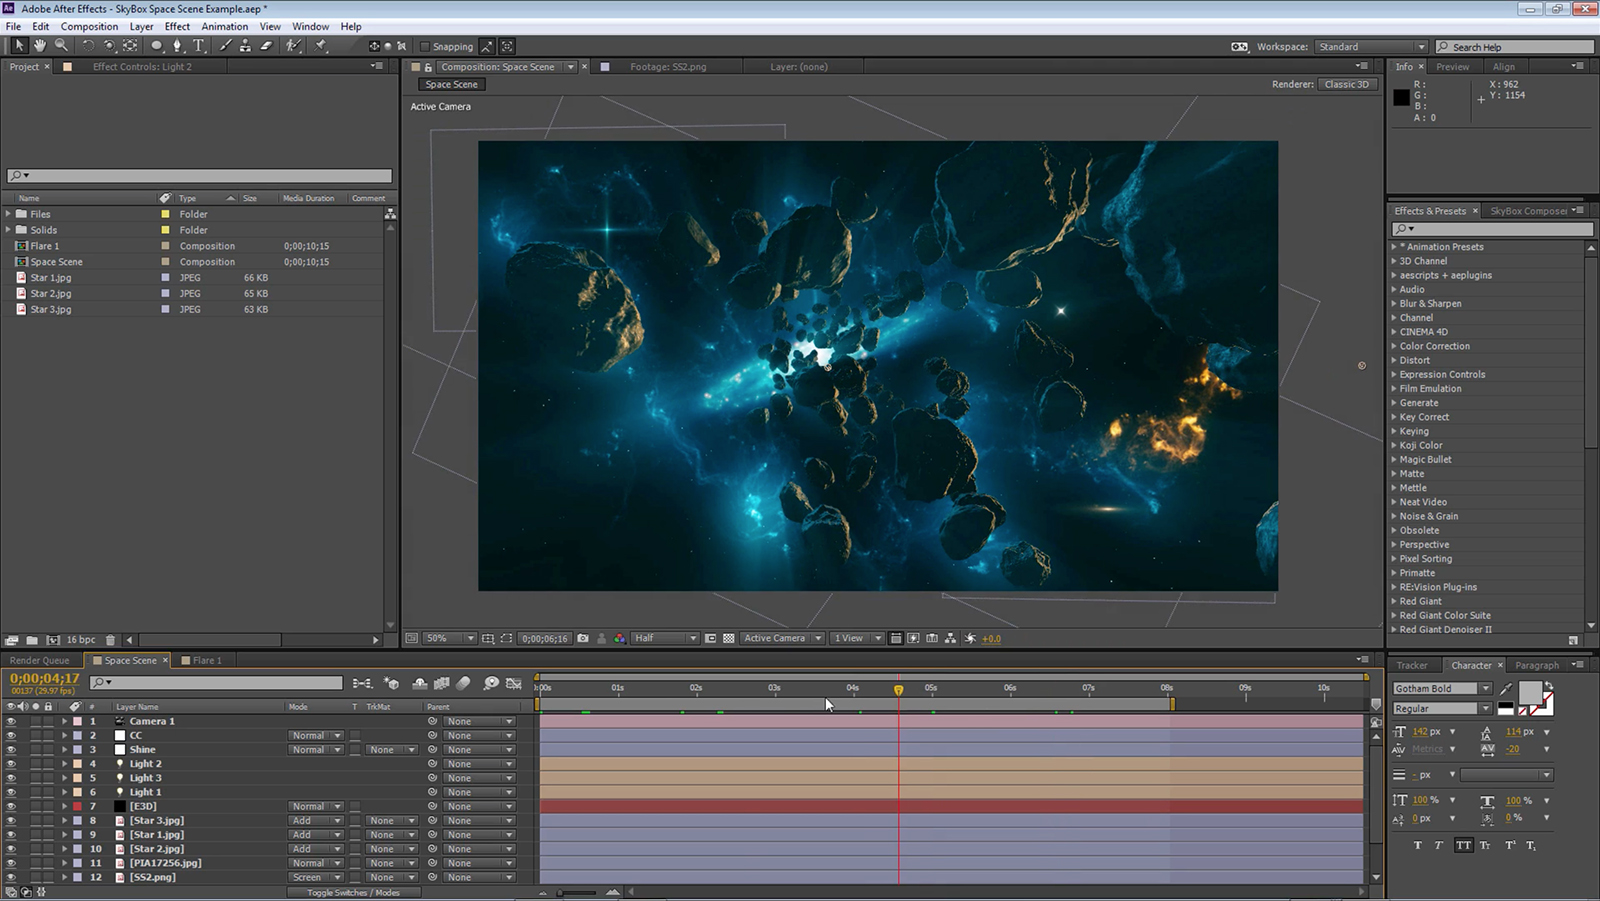 skybox-studio-v2-edit-comp-gives-a-360-view